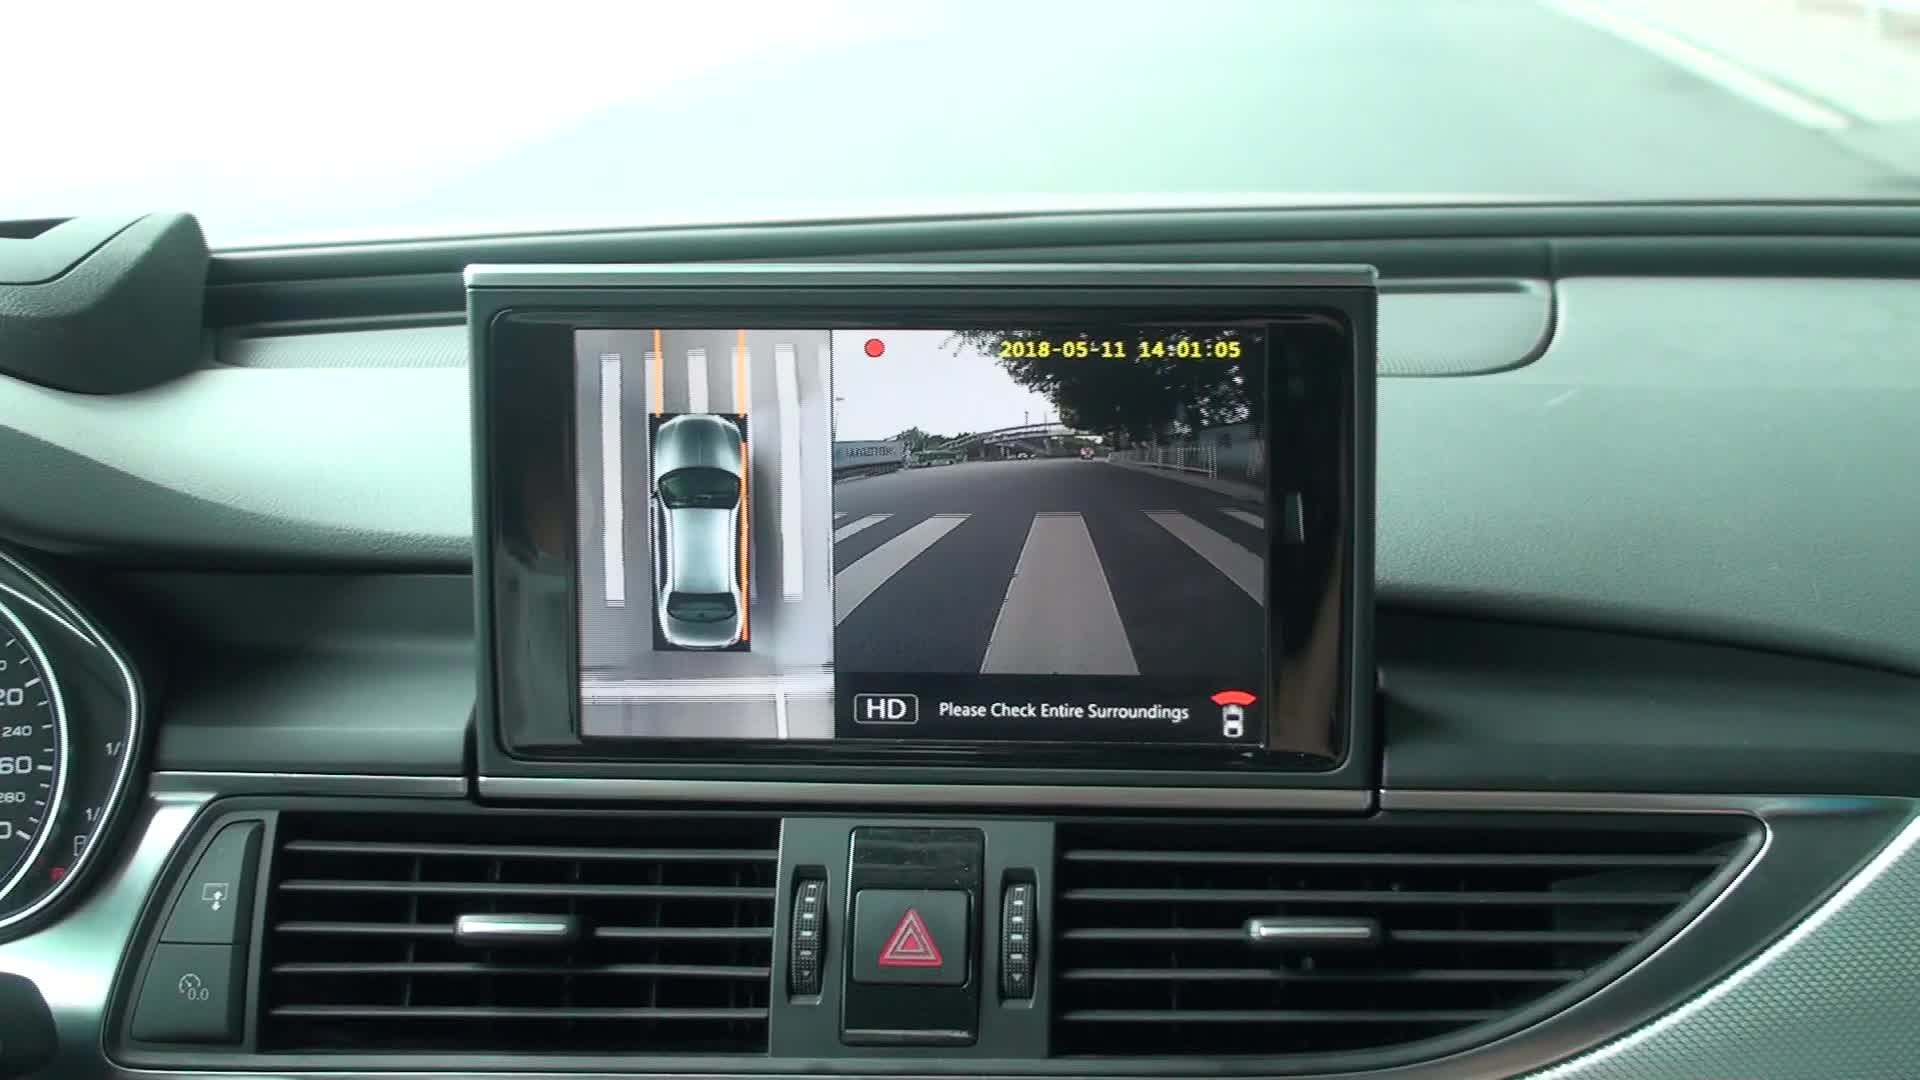 360 Degree View Birds Eye View Car Camera For A4 A5 Q5 Buy 360